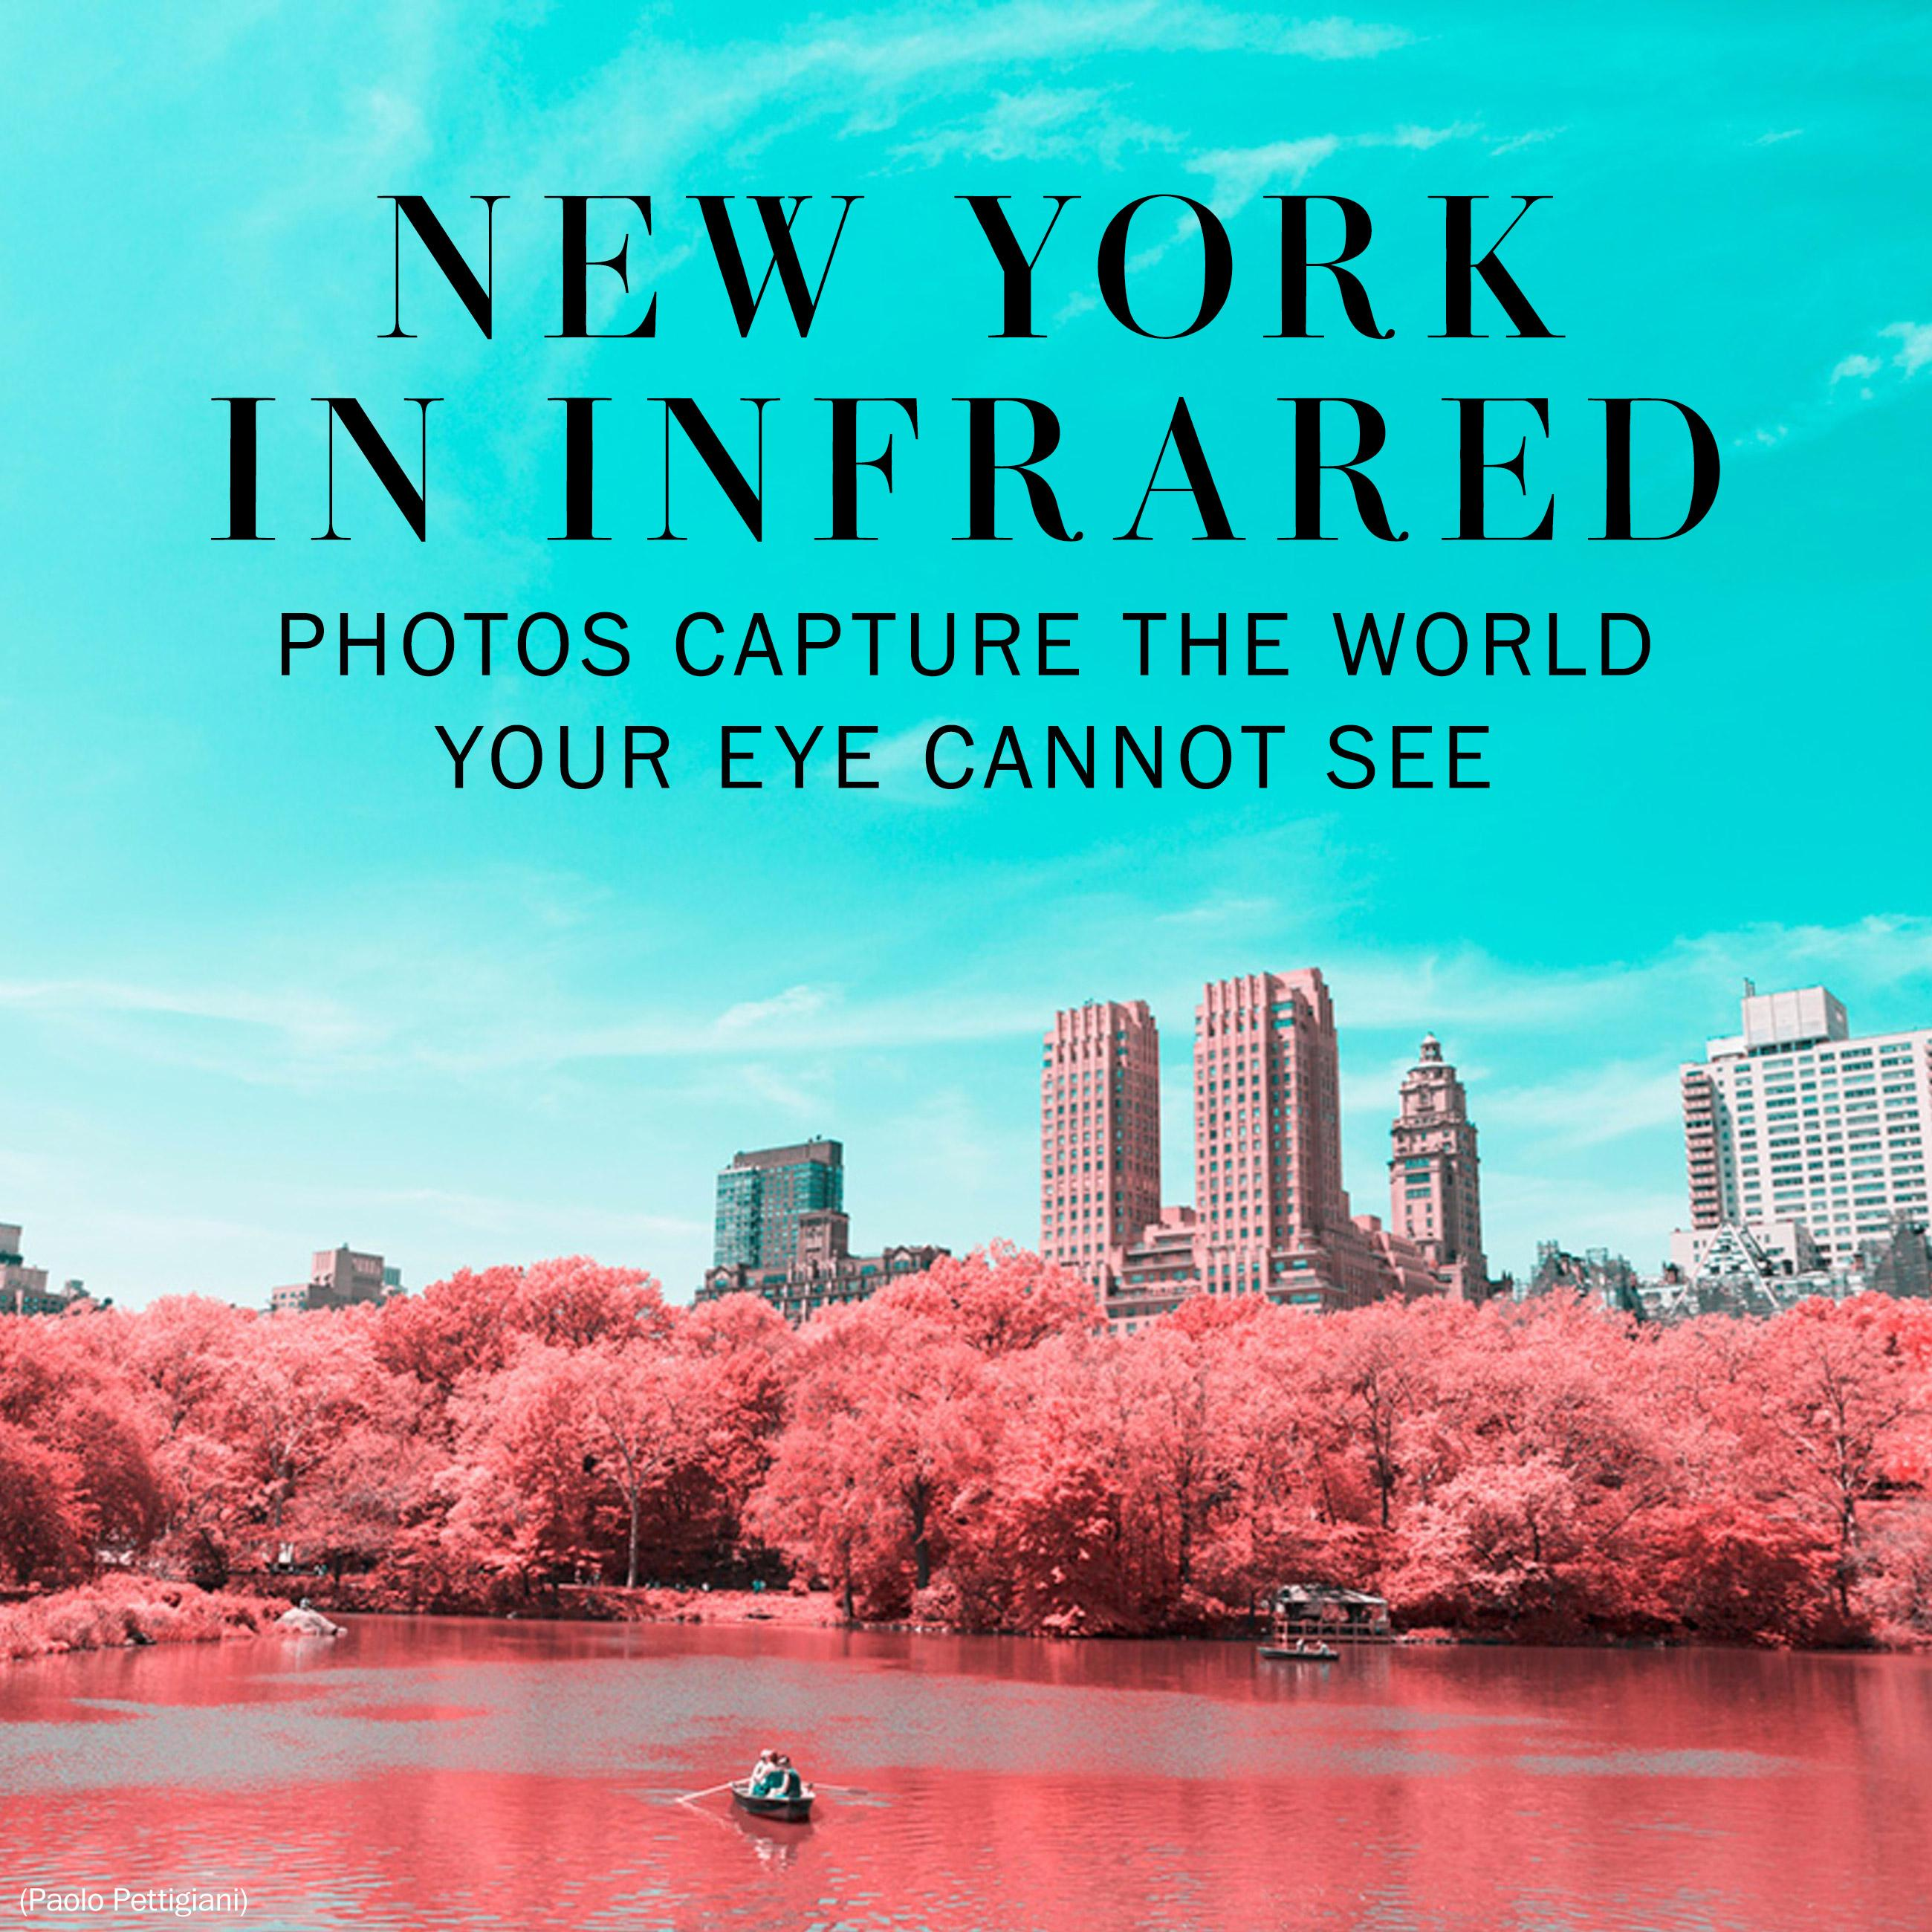 What the world looks like in infrared